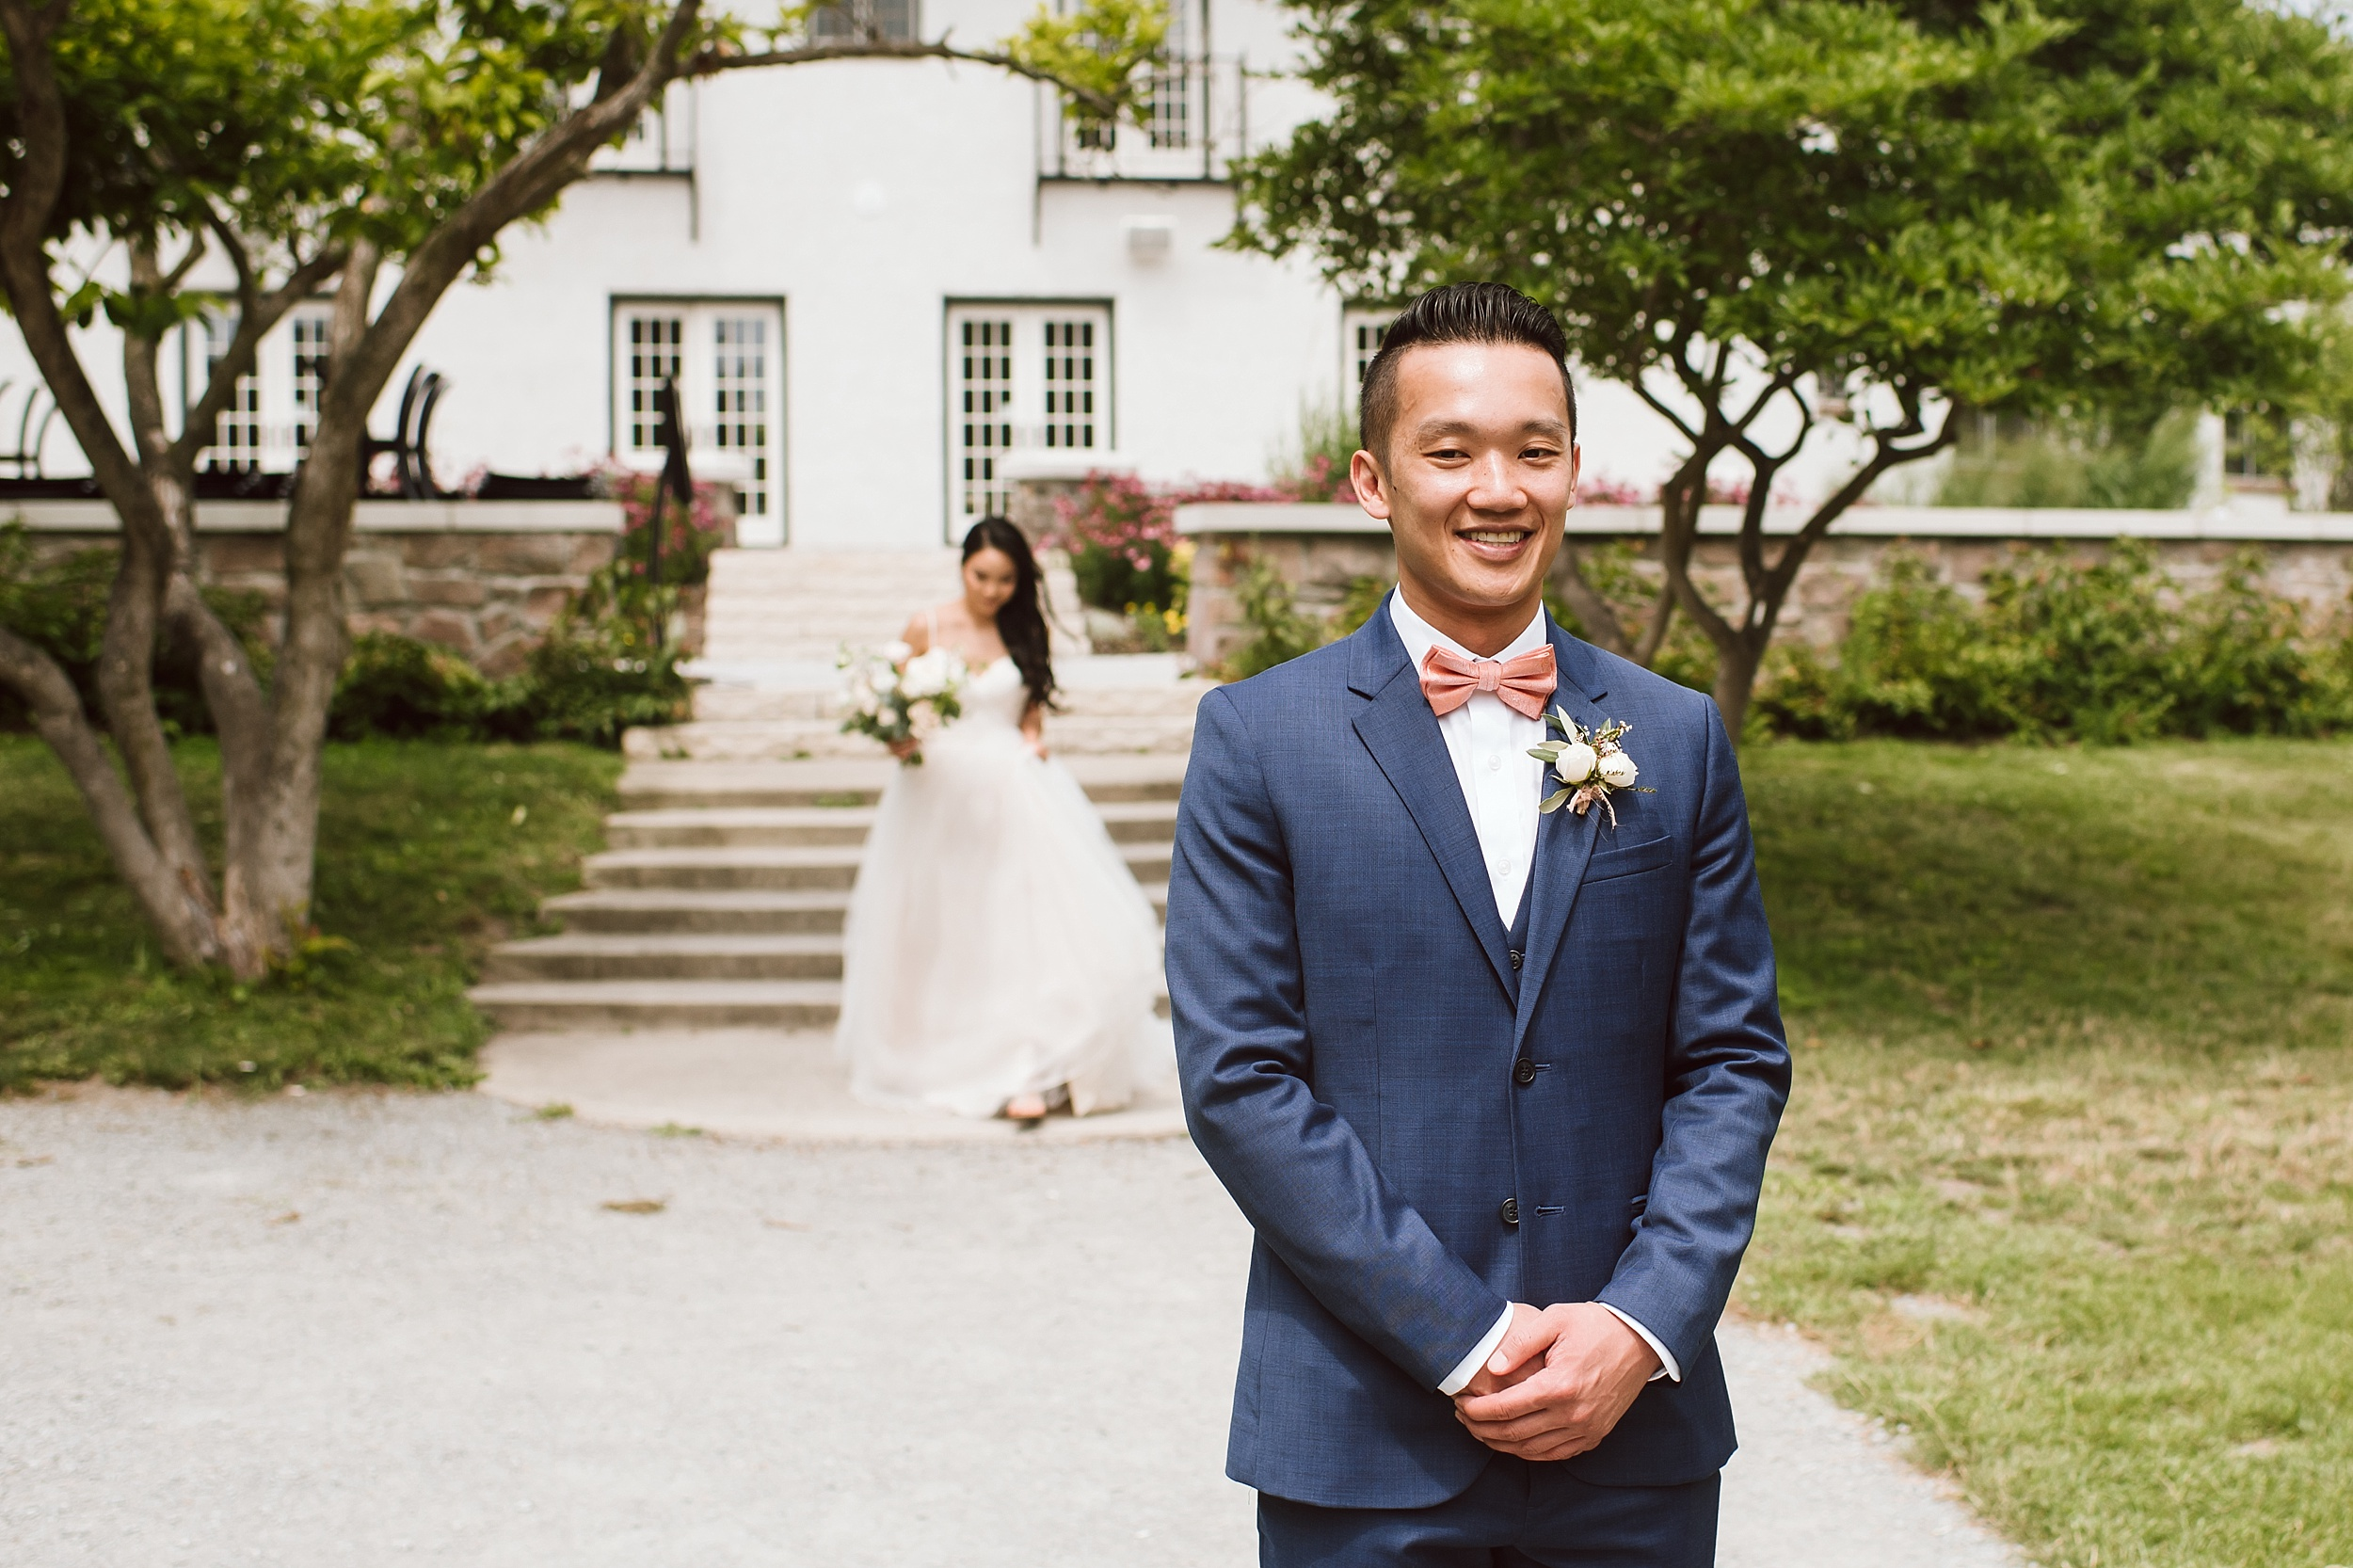 Guild_Inn_Estates_Scarborough_Wedding_Photographer_0032.jpg